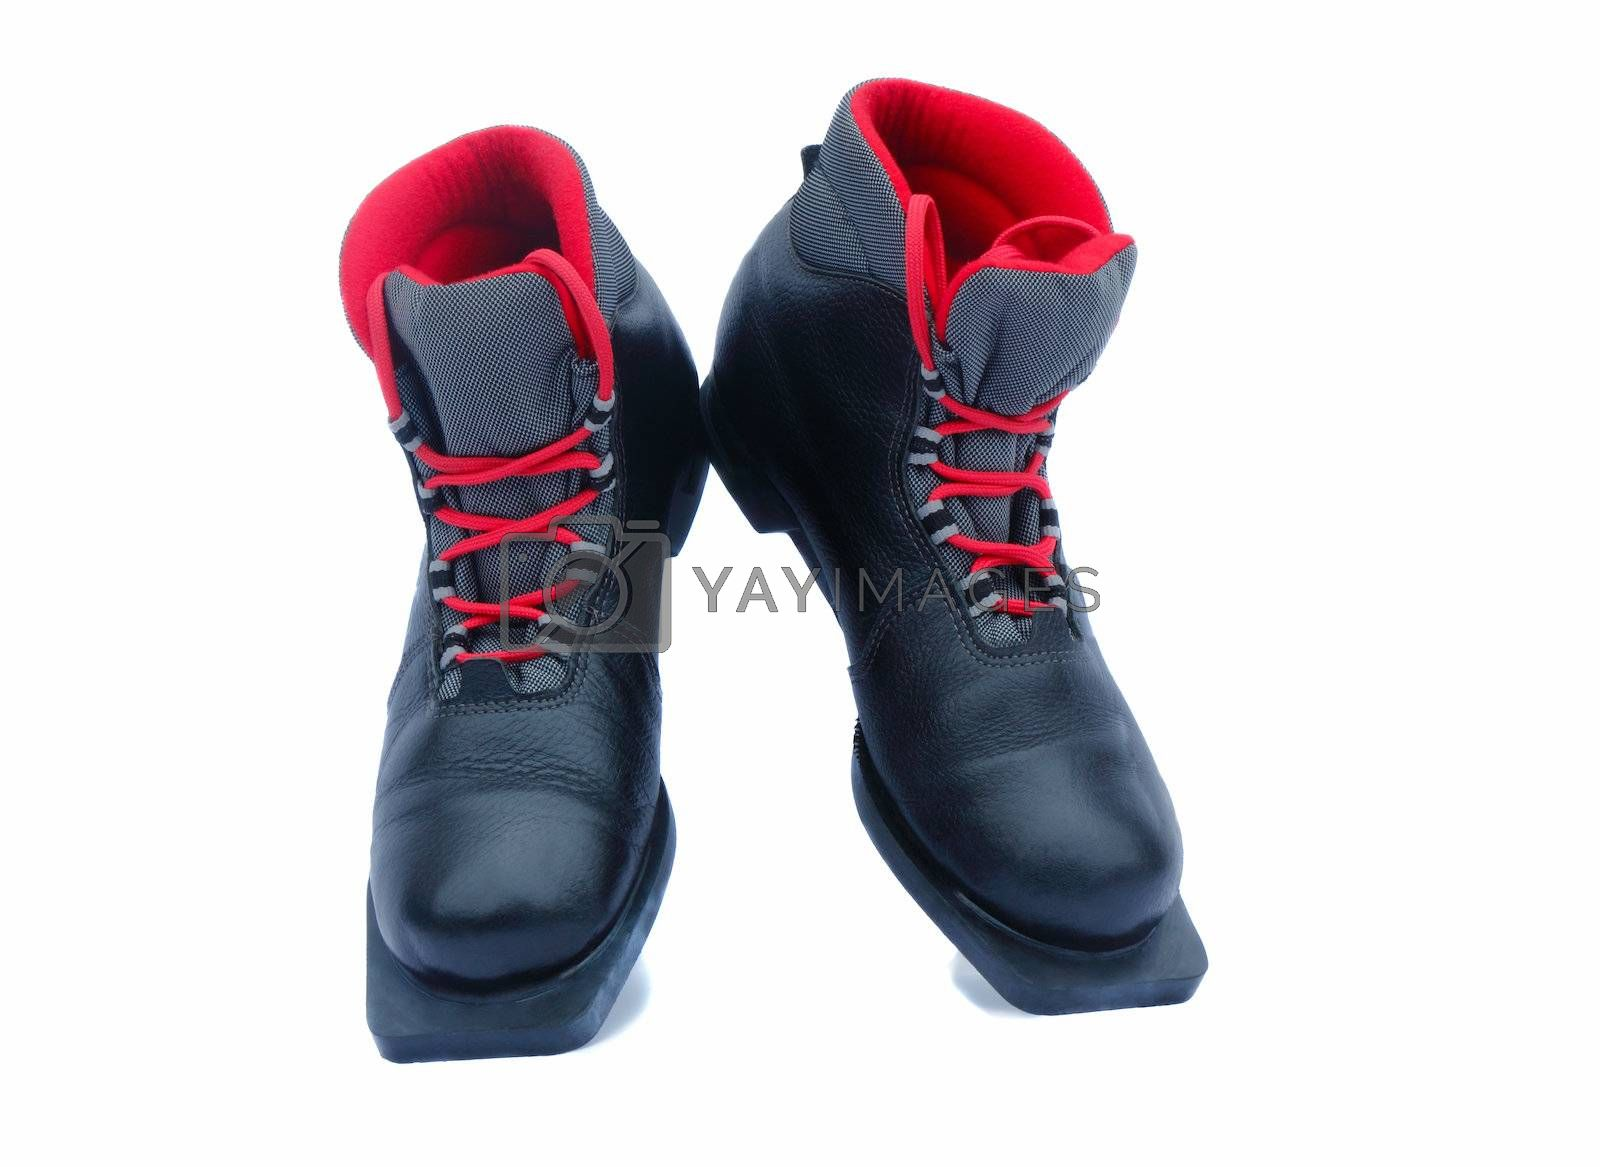 Leather black ski boots with a red lining. Are presented on a white background.